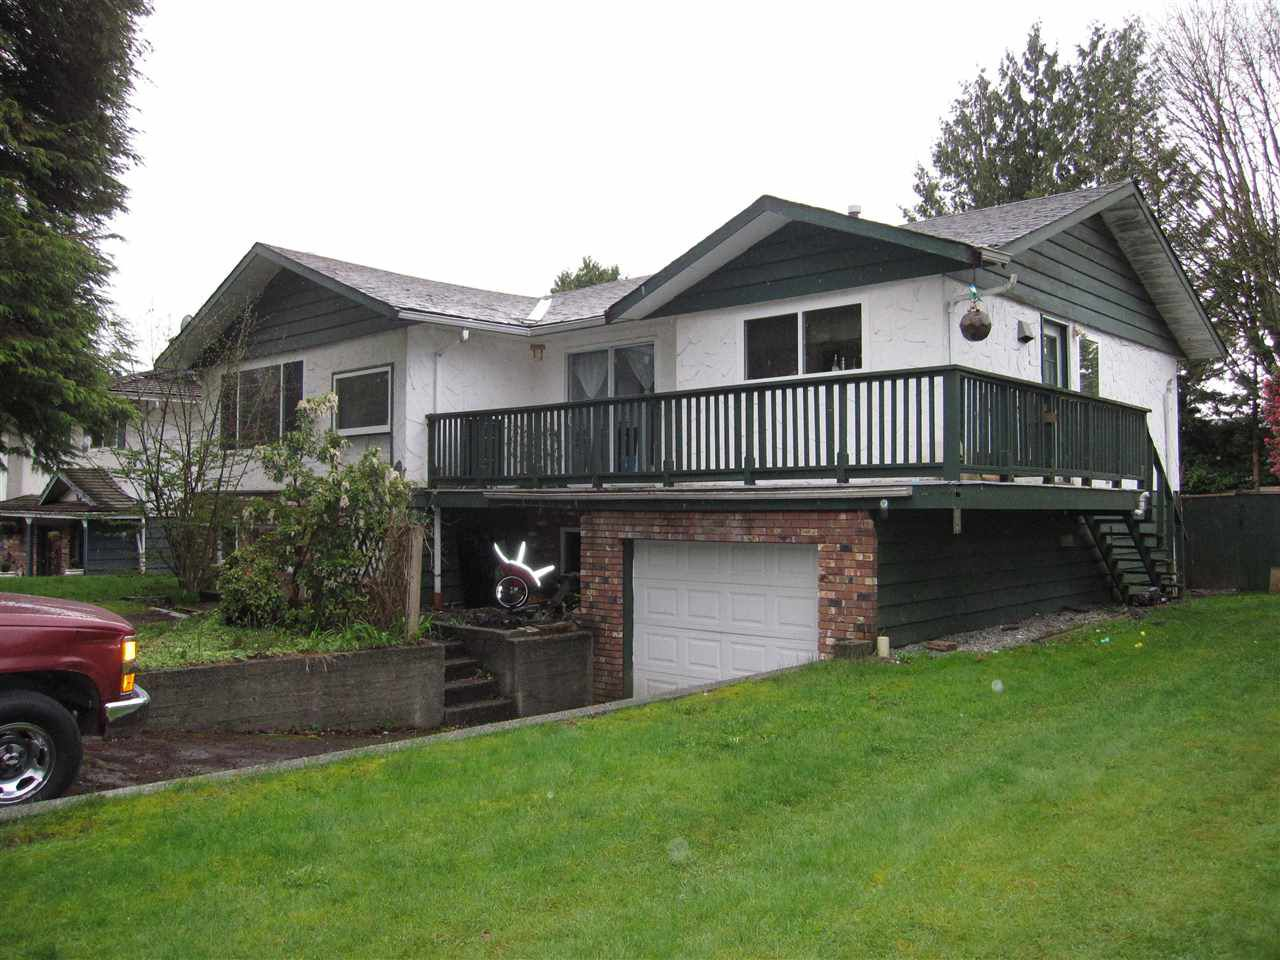 Main Photo: 11679 MORRIS Street in Maple Ridge: West Central House for sale : MLS®# R2157494